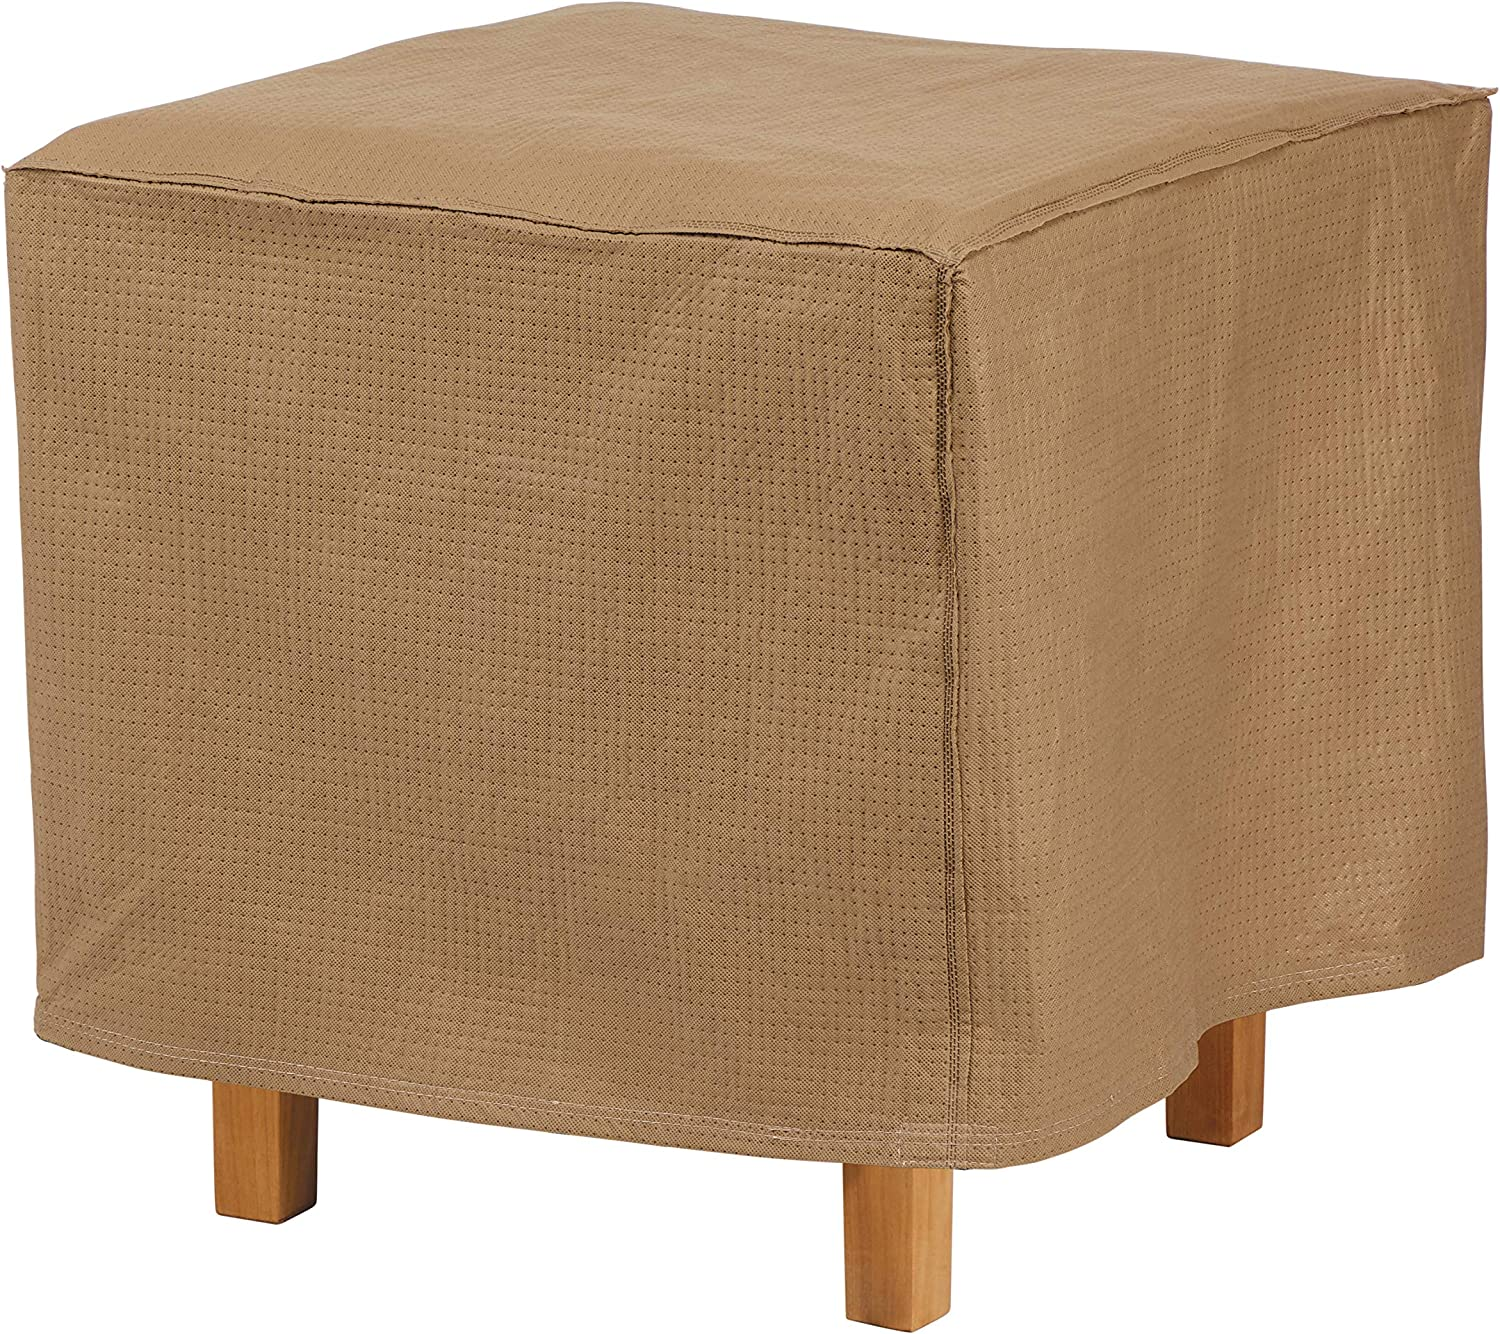 Duck Covers Essential Water-Resistant 26 Inch Square Patio Ottoman/Side Table Cover